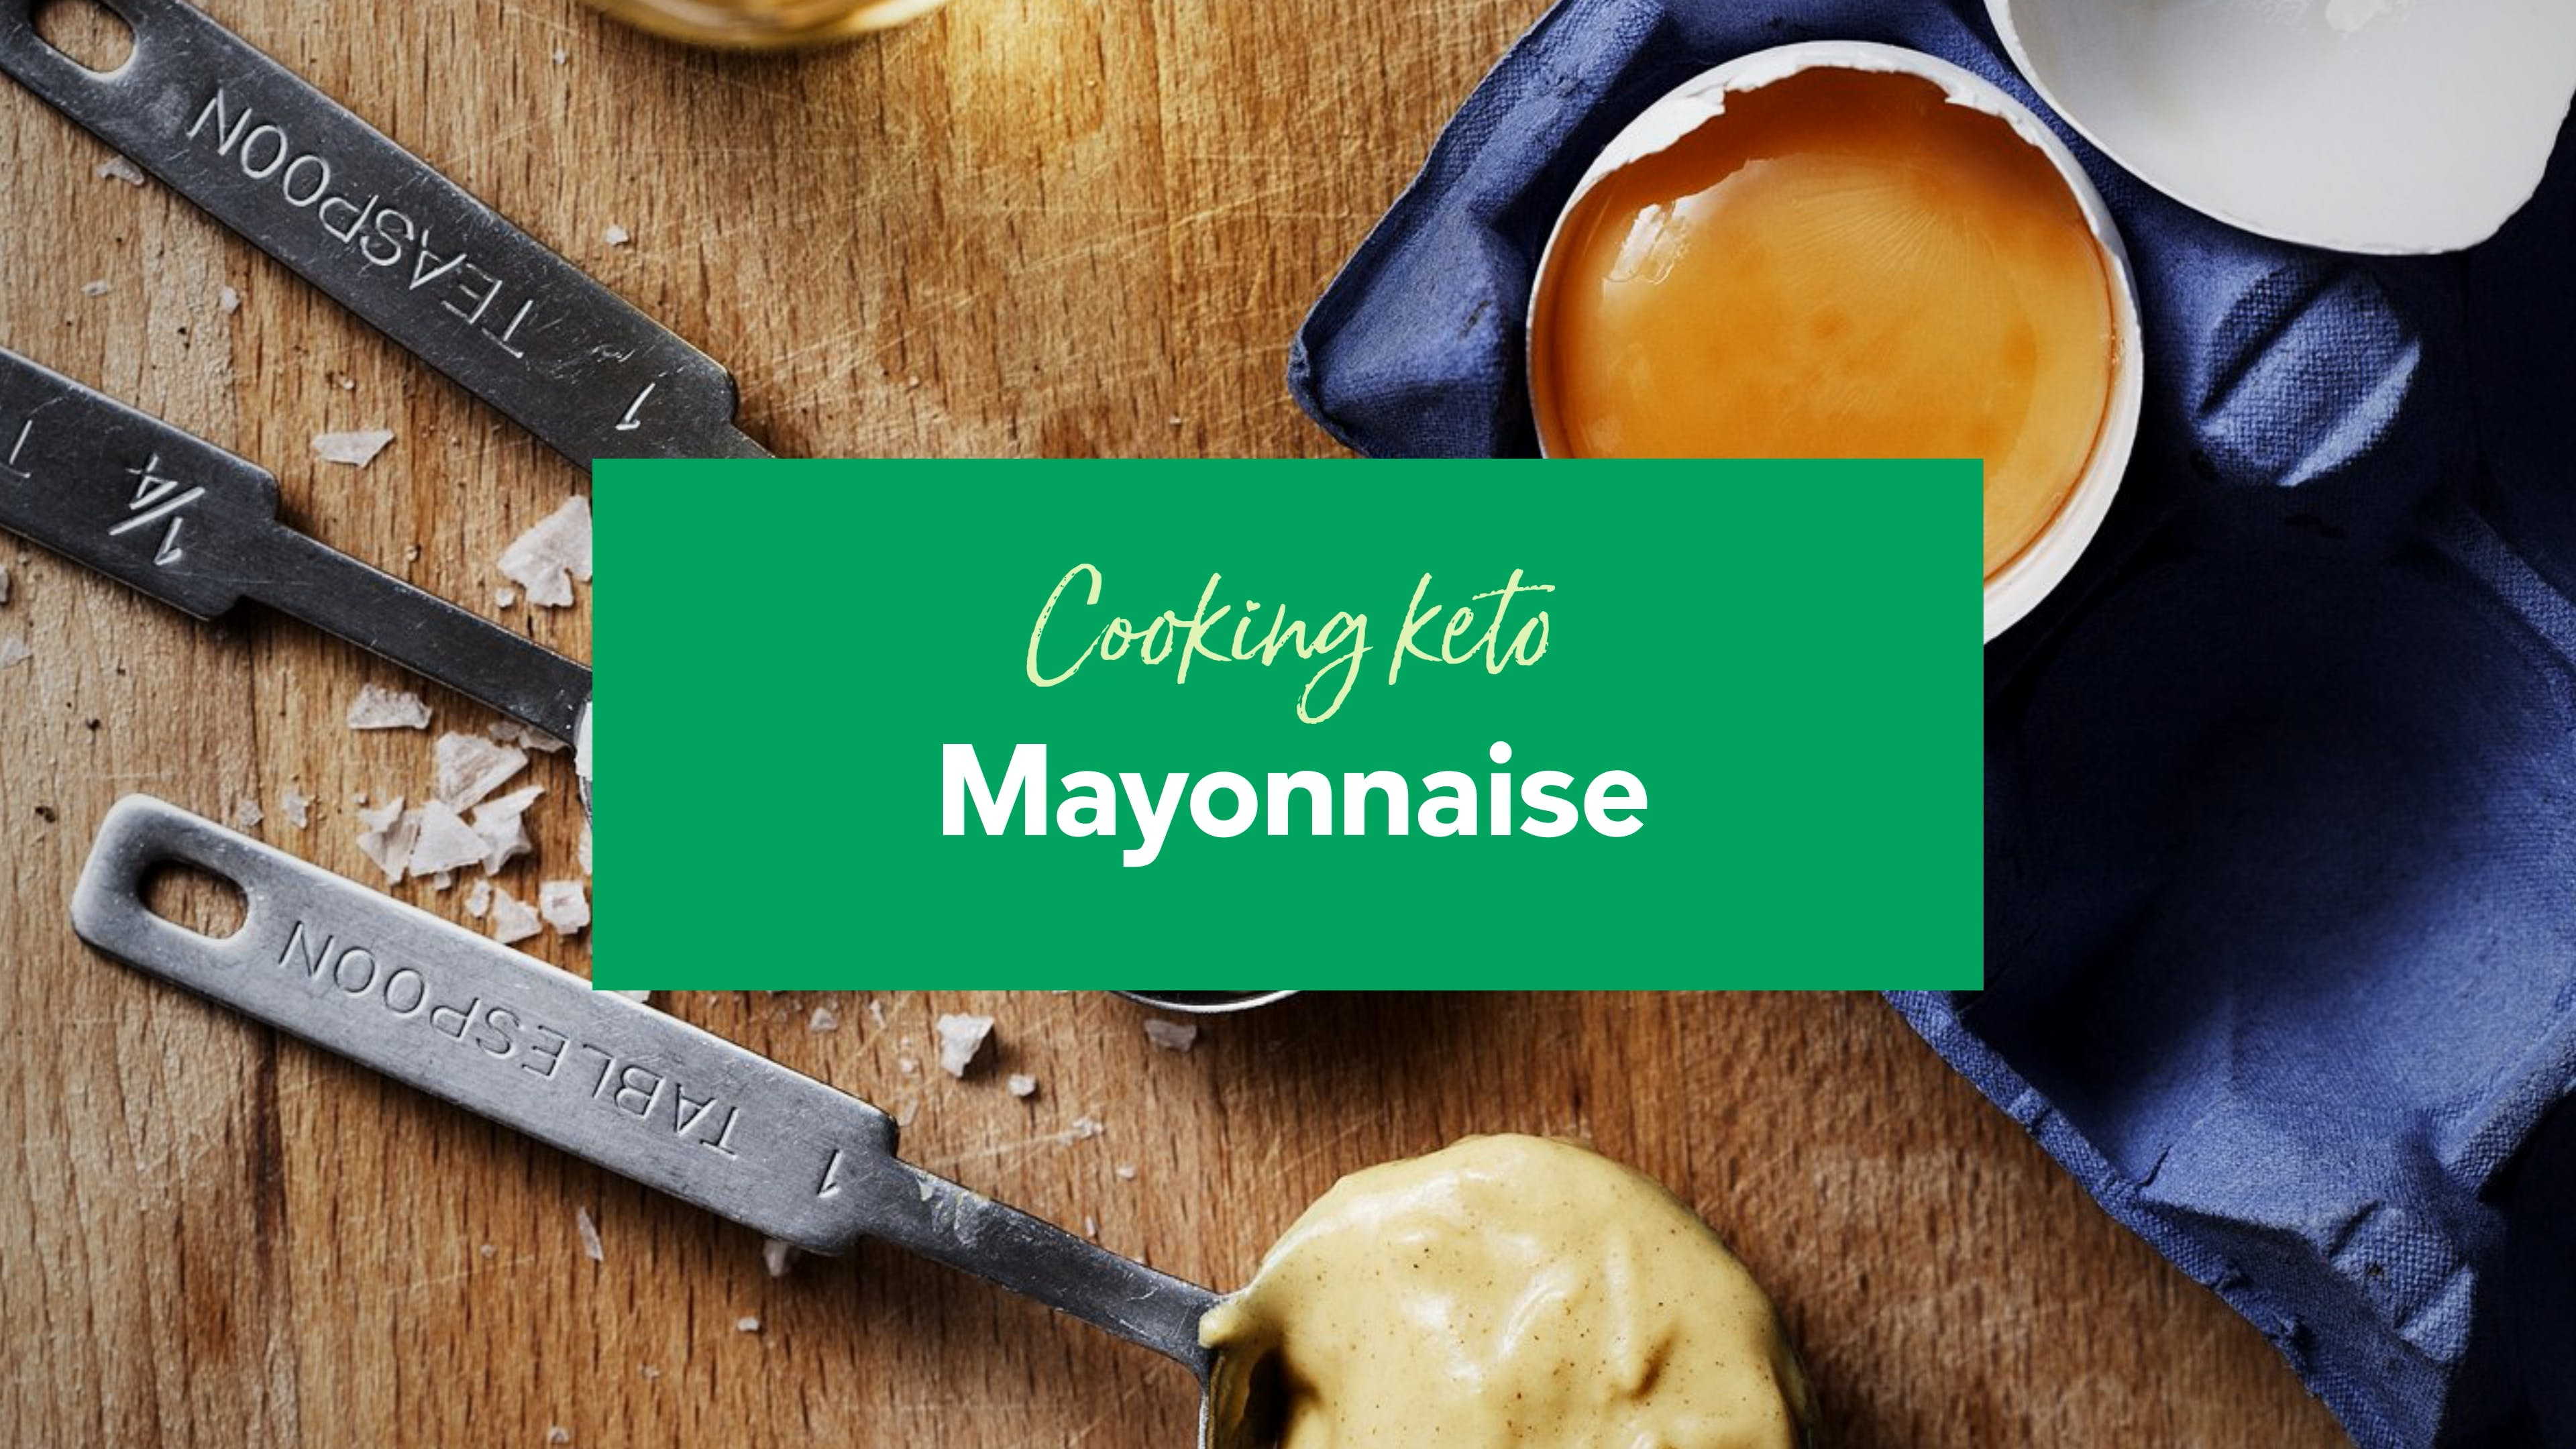 Cooking keto: Mayonnaise